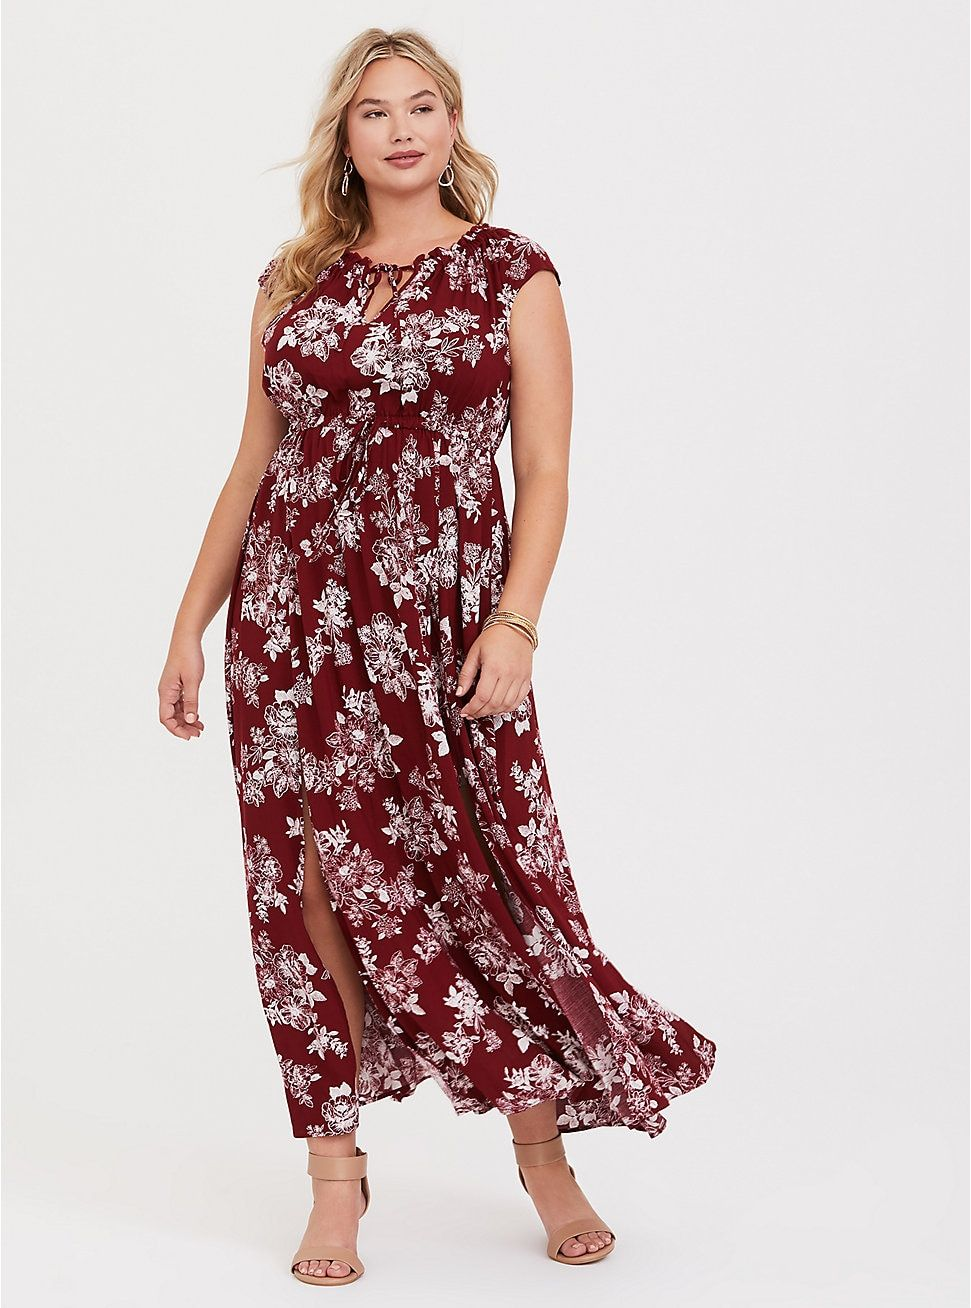 Wedding decorations red and black october 2018 Red Floral Tie Neck Challis Maxi Dress in   Gifts for myself